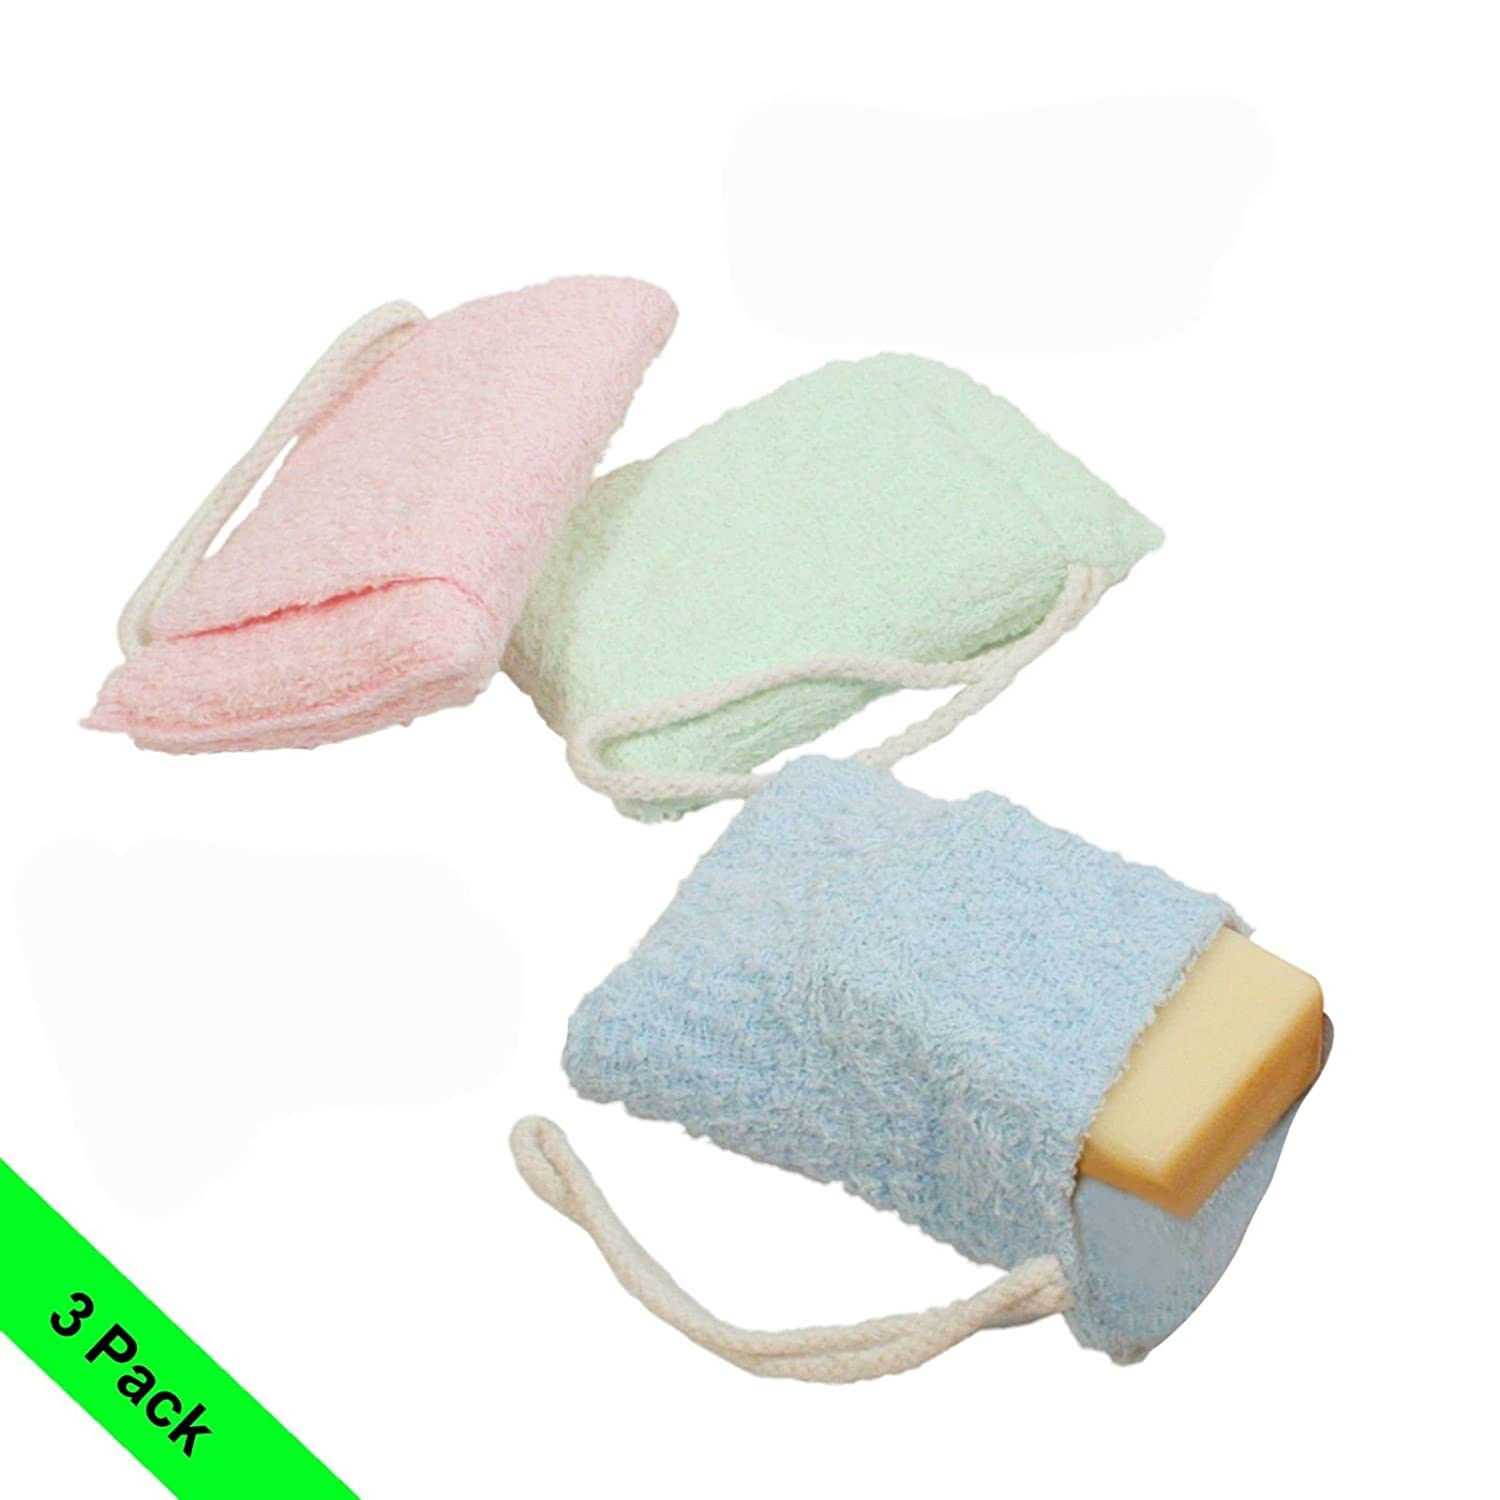 soap pouches